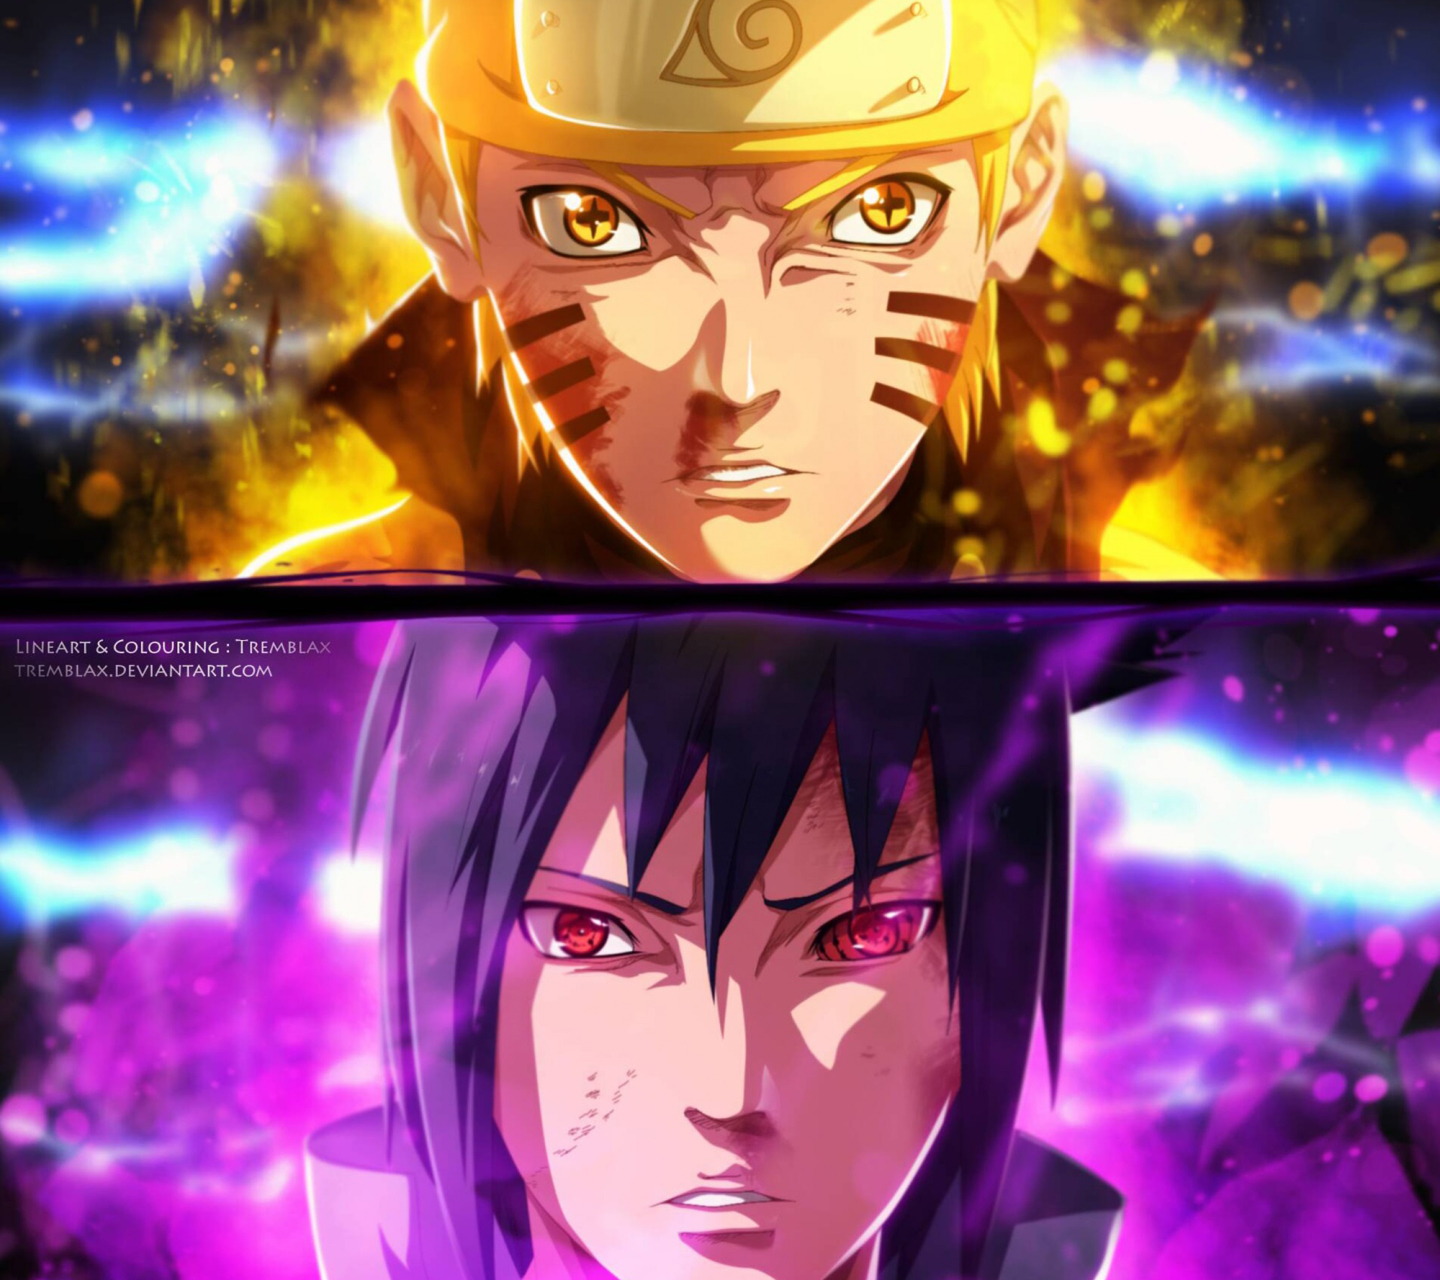 Anime Naruto 1440x1280 Wallpaper Id 625390 Mobile Abyss